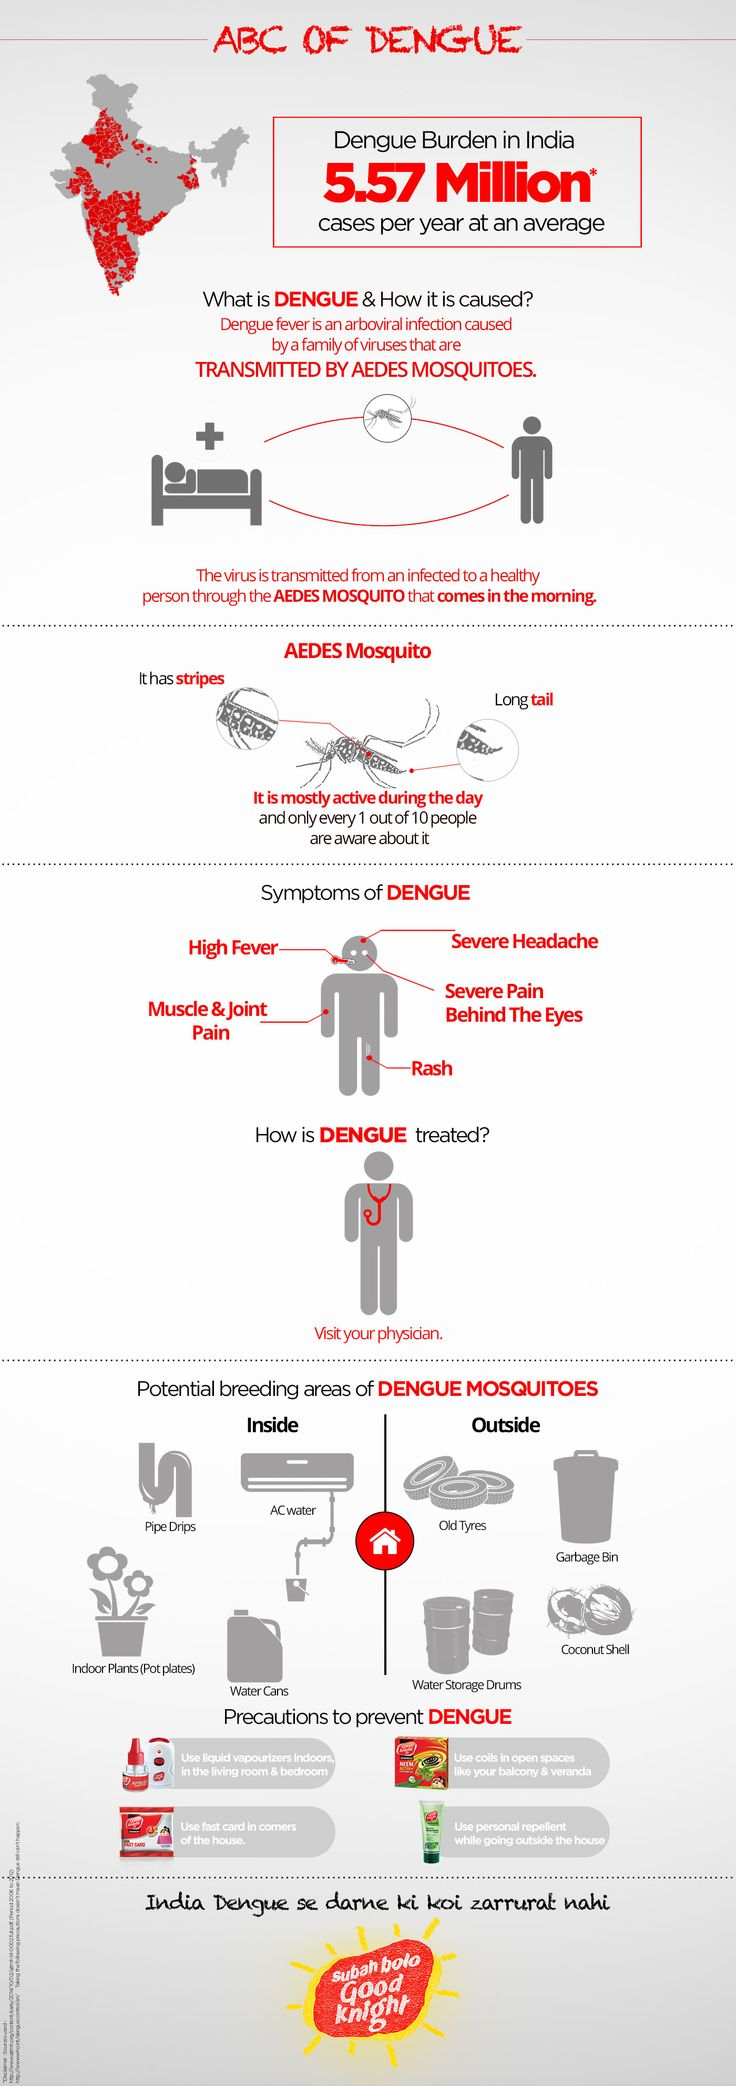 Everything you need to know about Dengue fever, its symptoms, treatments, prevention and causes.